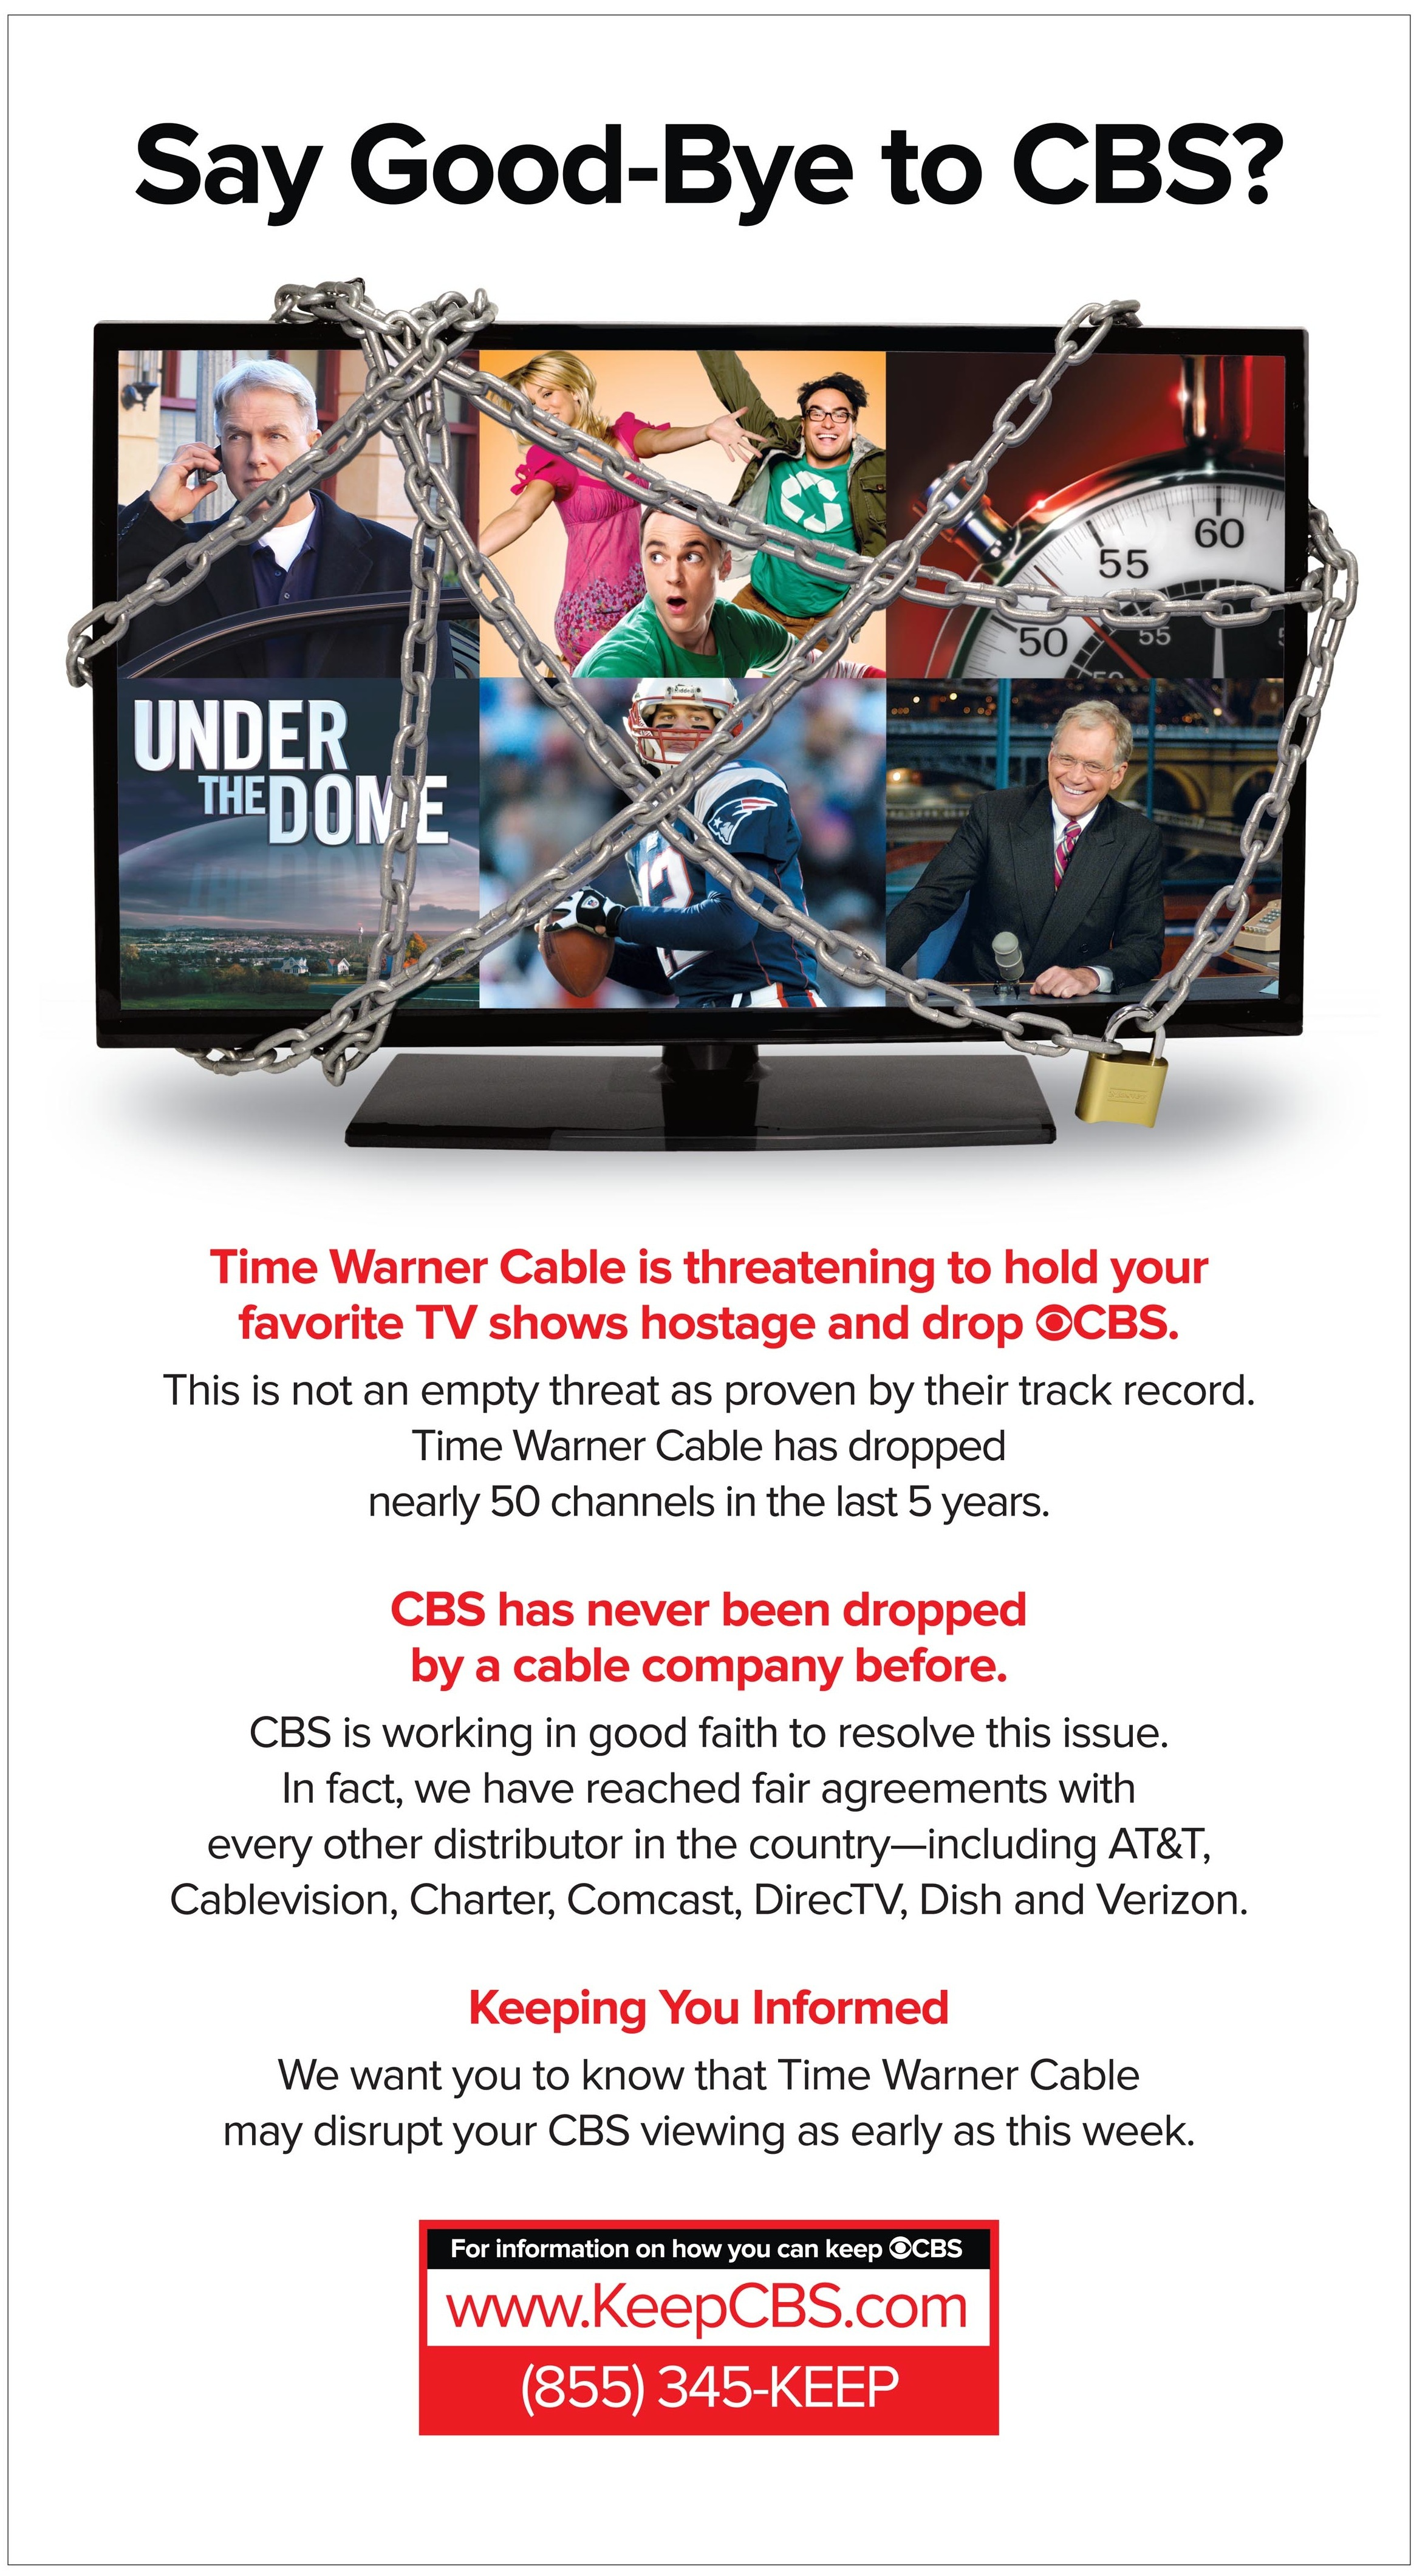 A CBS ad says its shows are held hostage by Time Warner Cable.